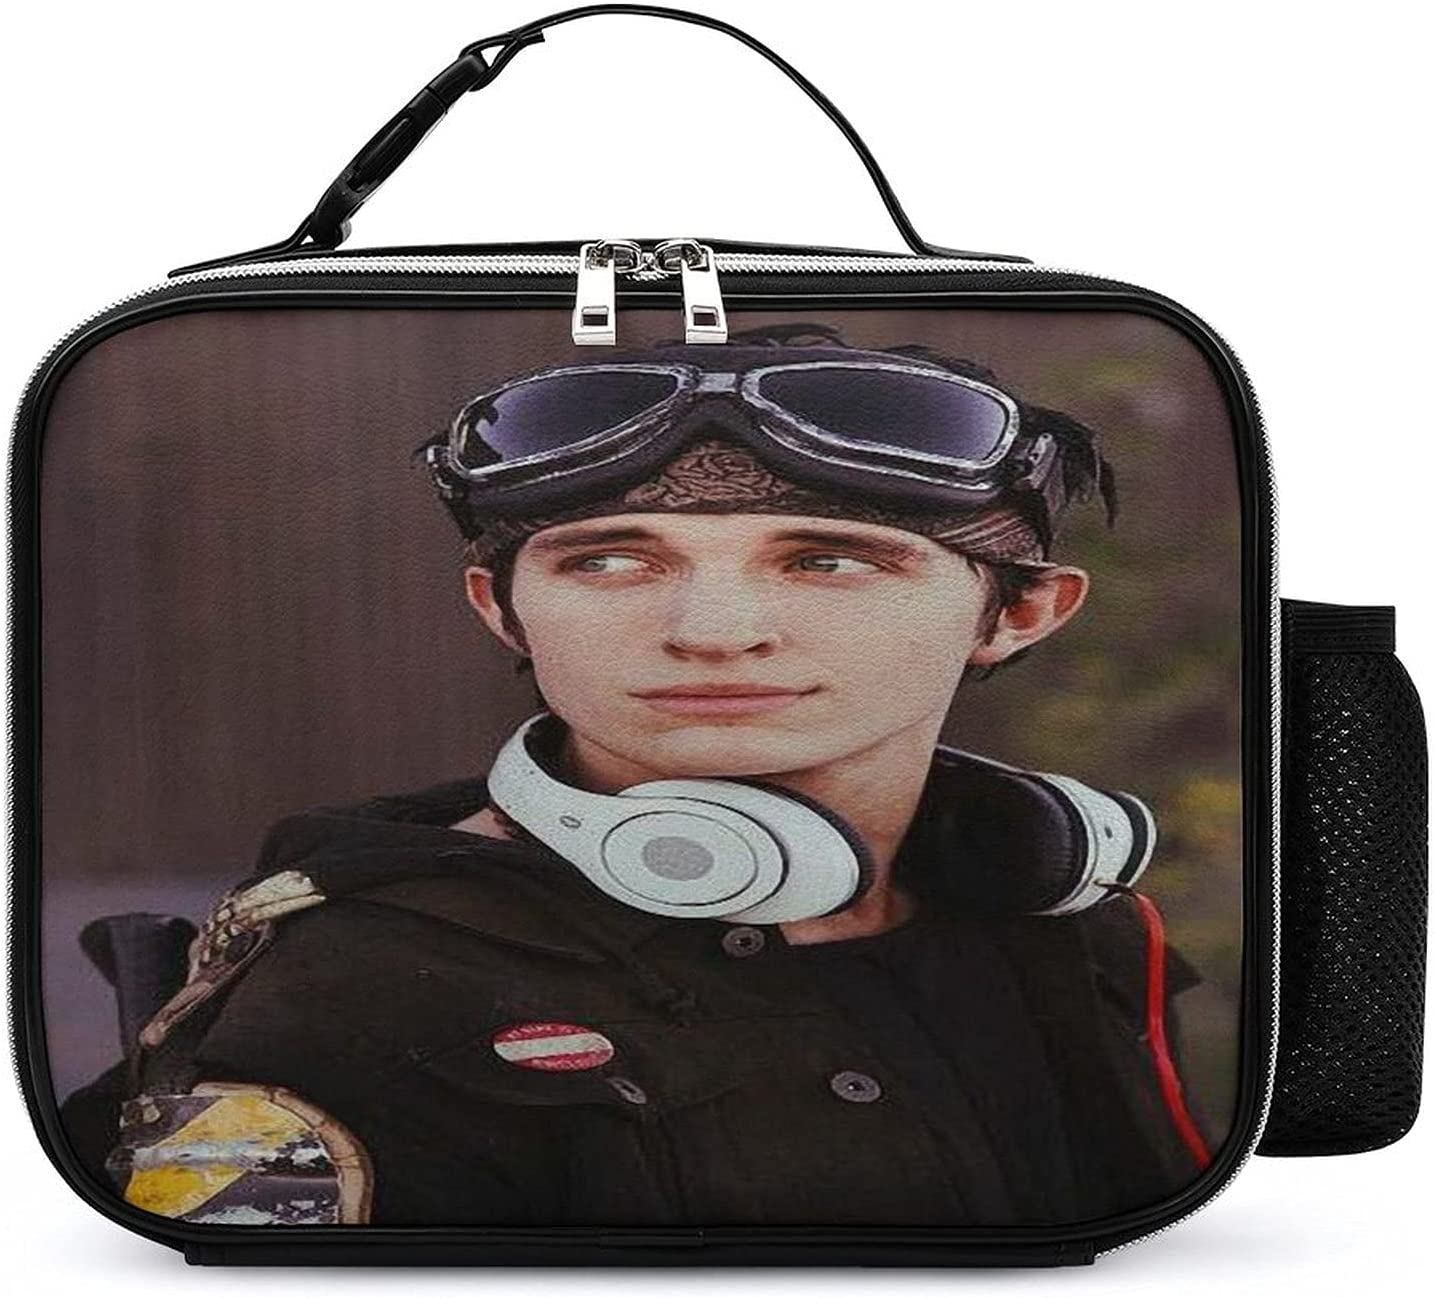 Airkungfu 2021 Z Na-Tion 90s Horror Max 76% OFF Movie Lunch Merch Bag Leather PU